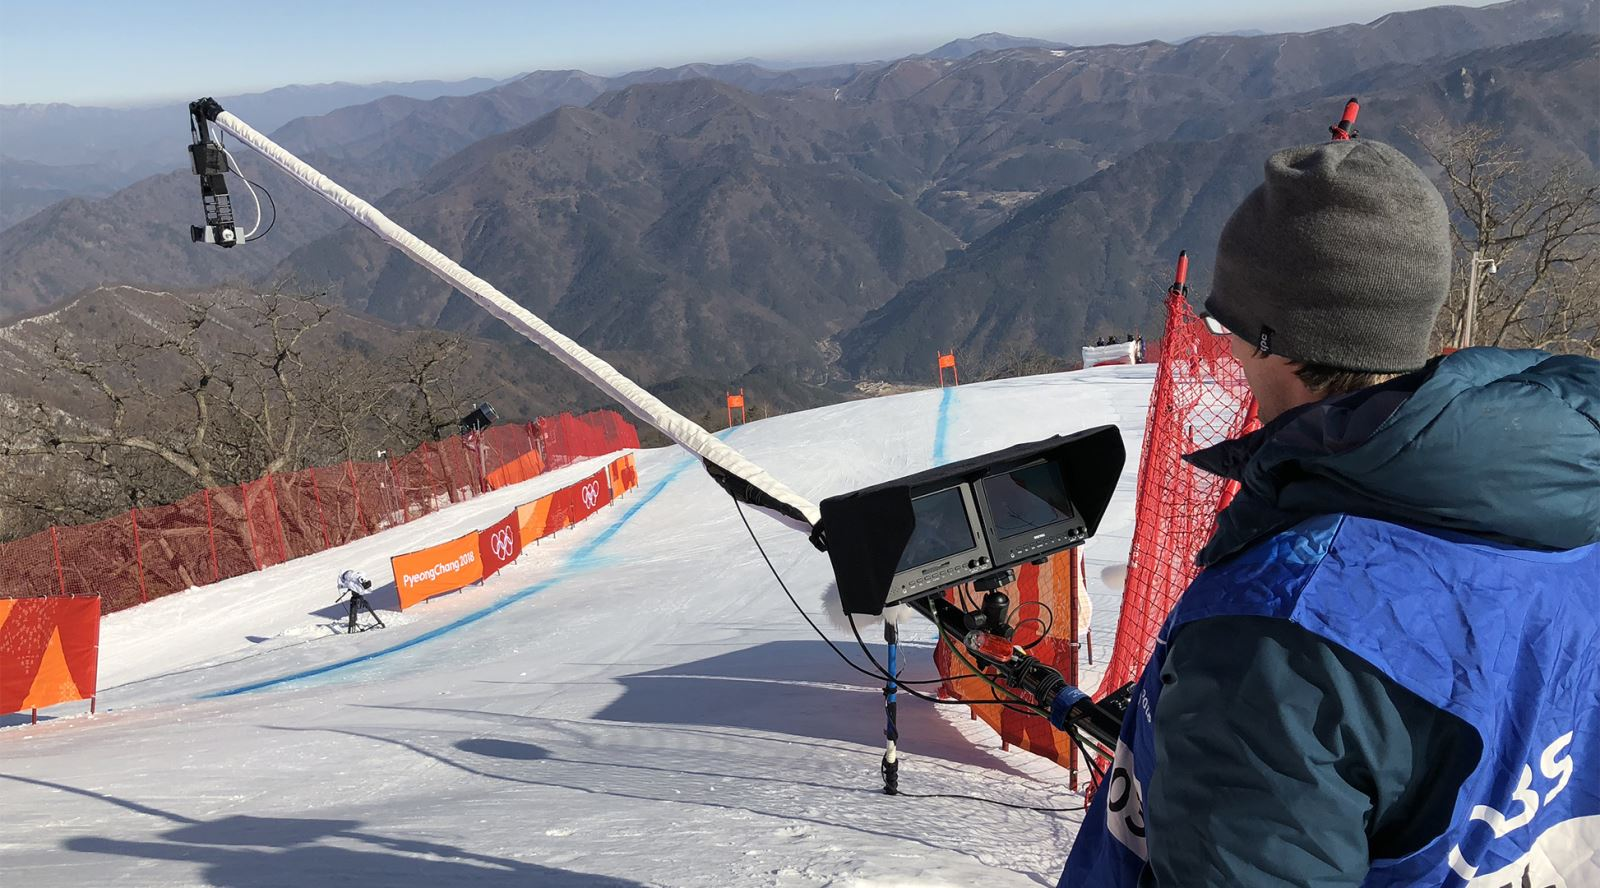 Swiss cameraman Qwer Jorns operating Polecam at  the start of Men's Downhill in Korea